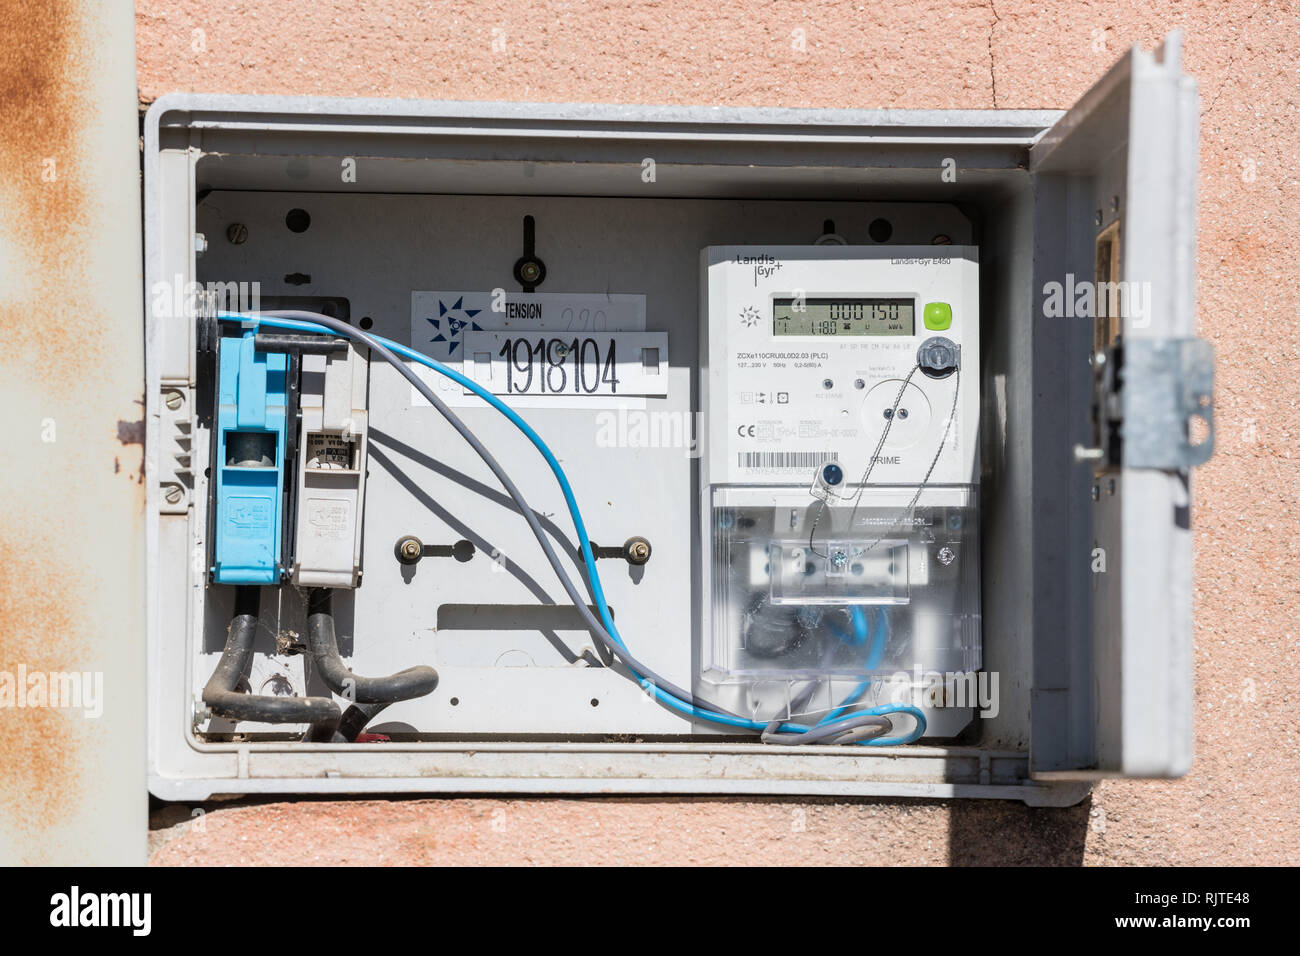 Open electric panel and meter in a street in Caceres, Extremadura, Spain. - Stock Image